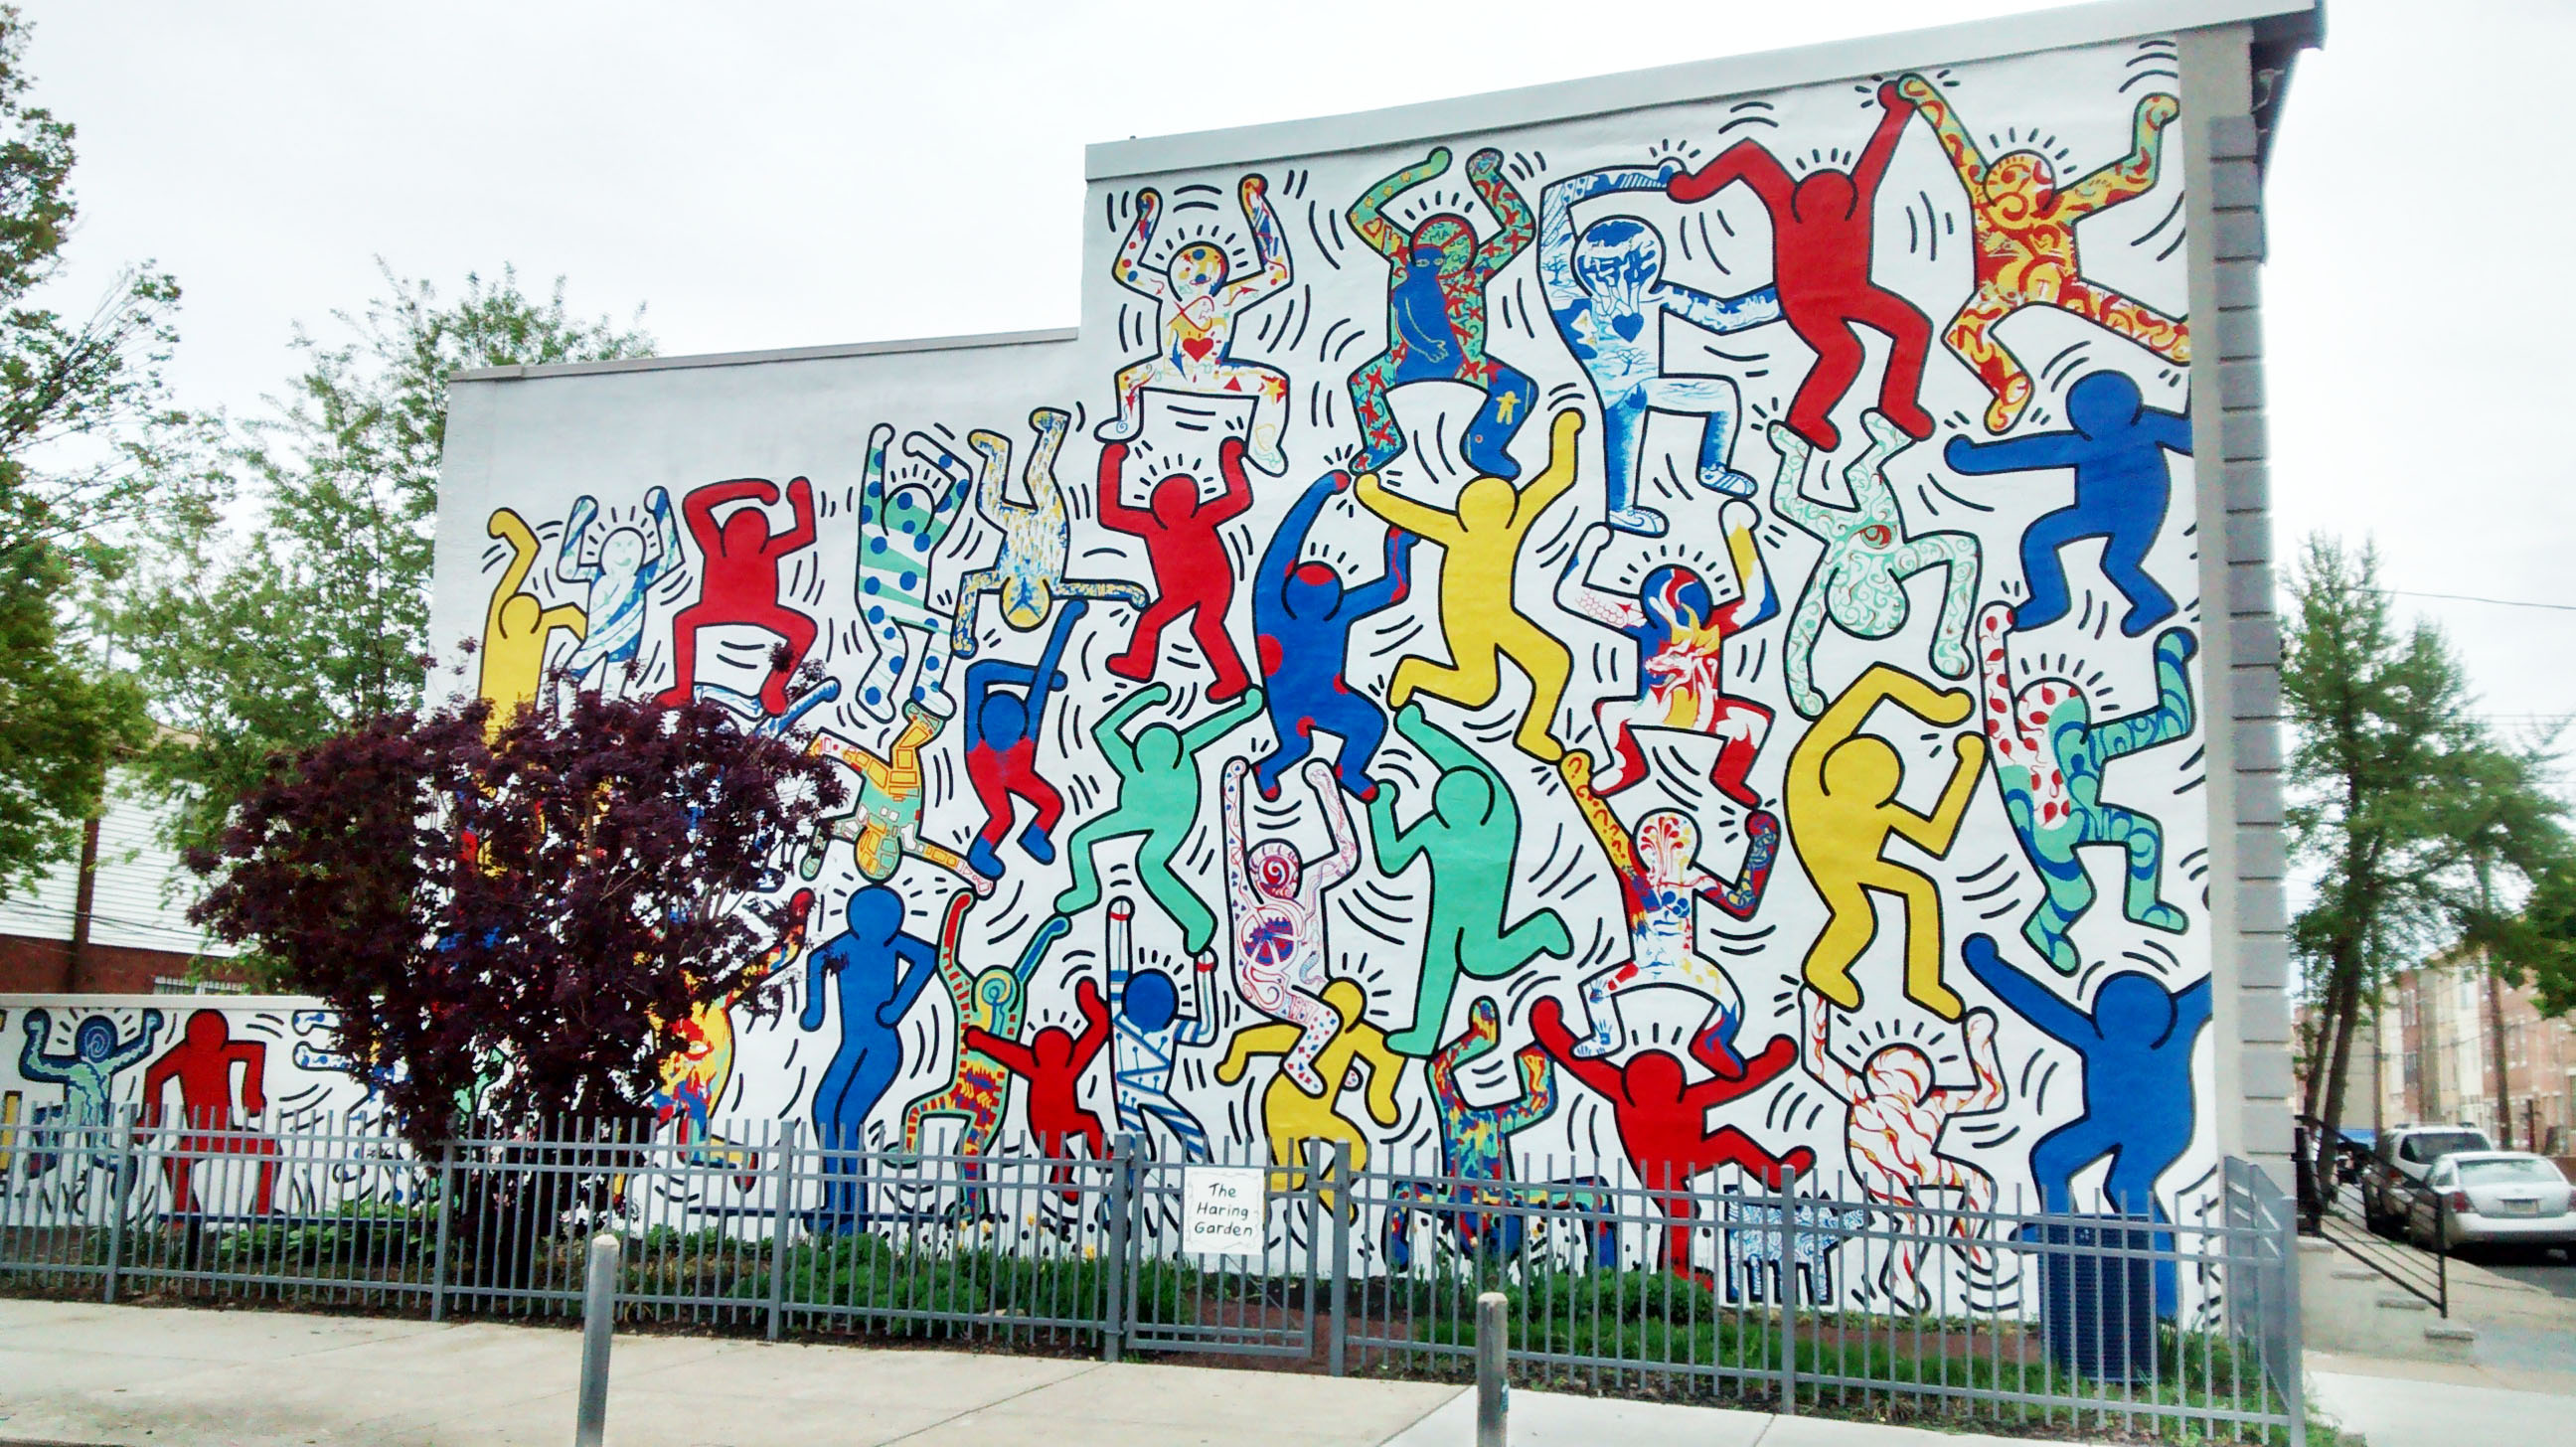 FichierKeith Haring We Are The Youthjpg — Wikip&233dia